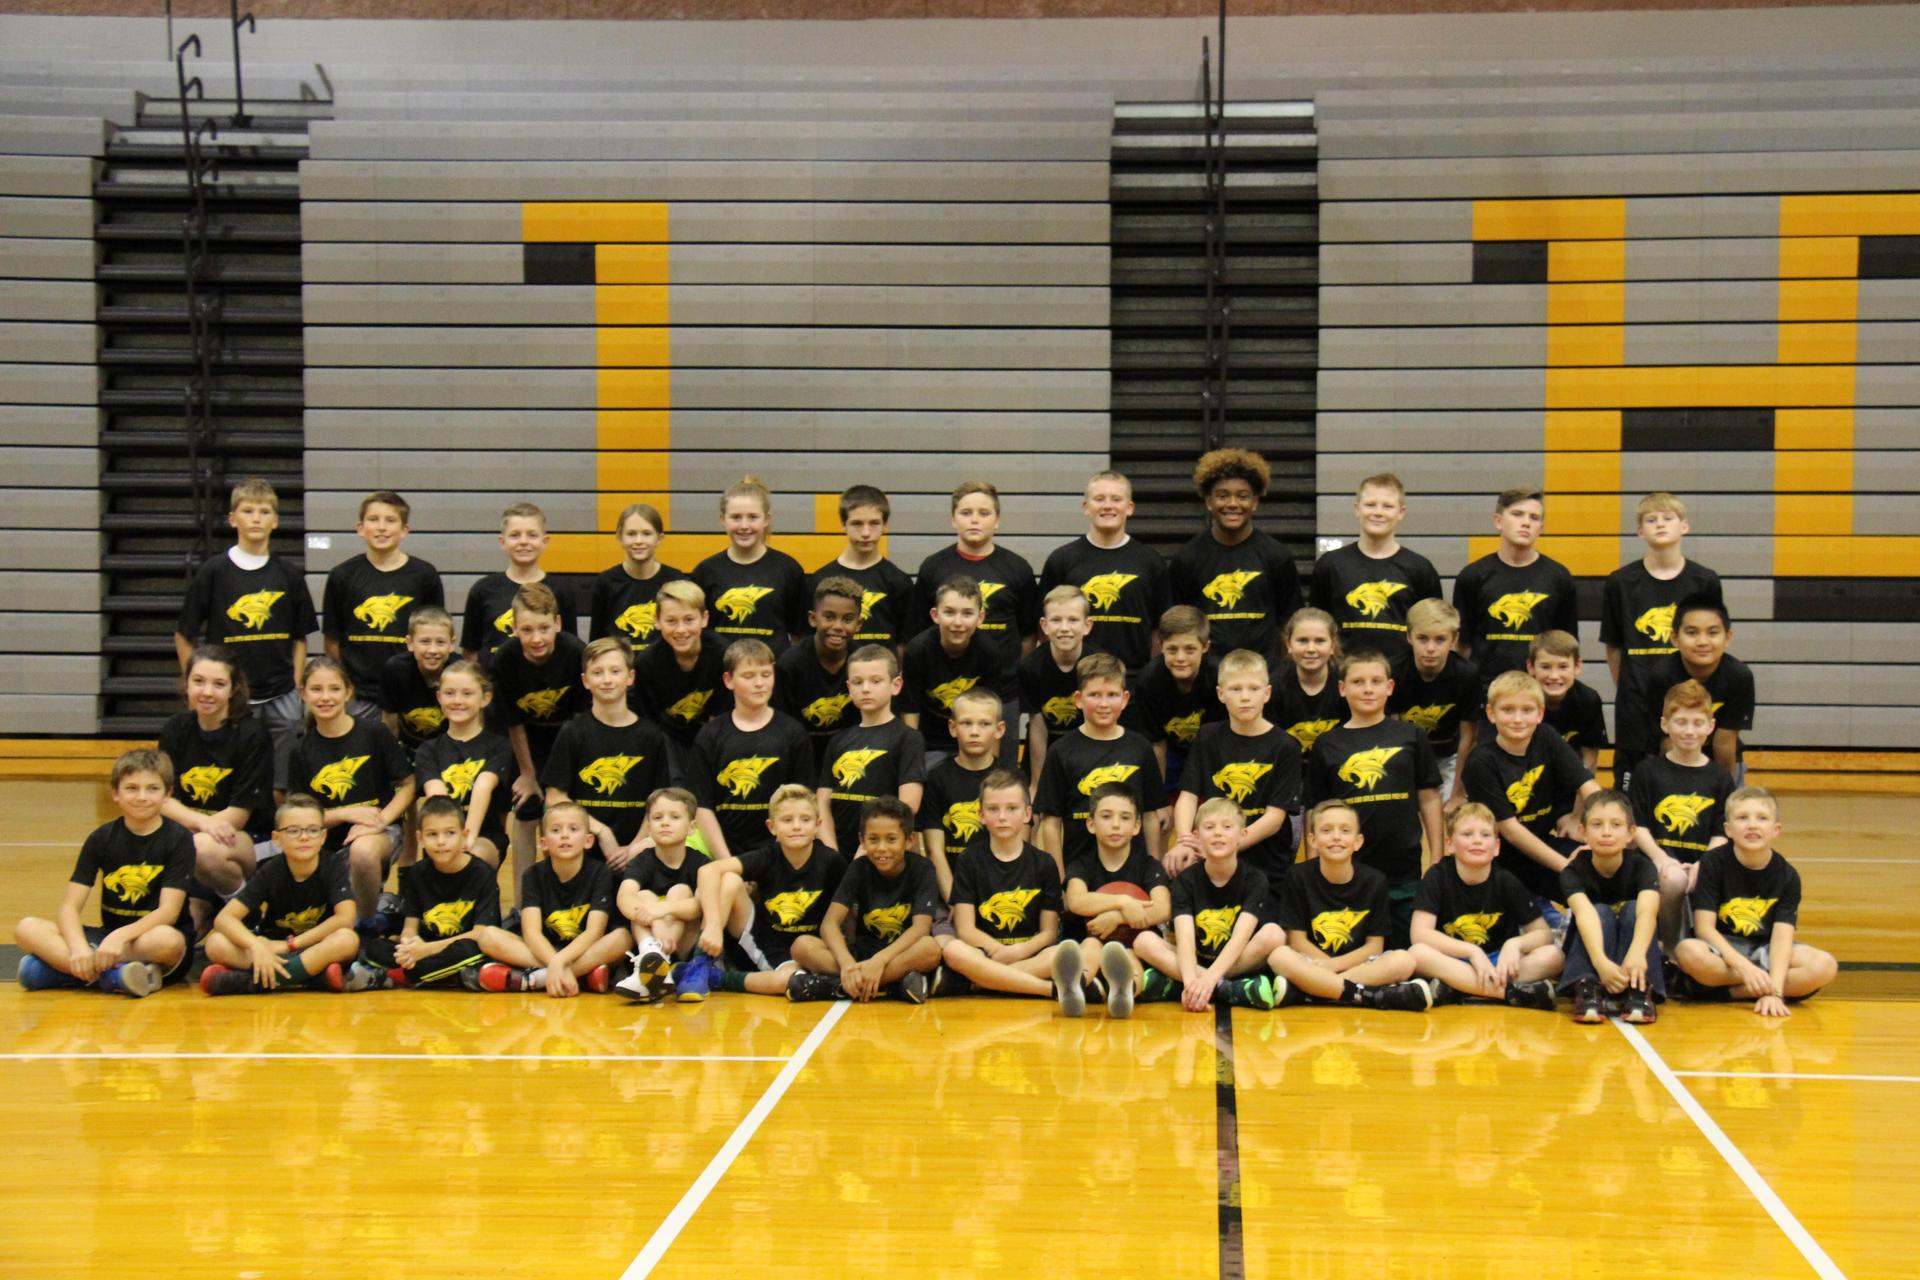 Students posing for basketball camp group picture